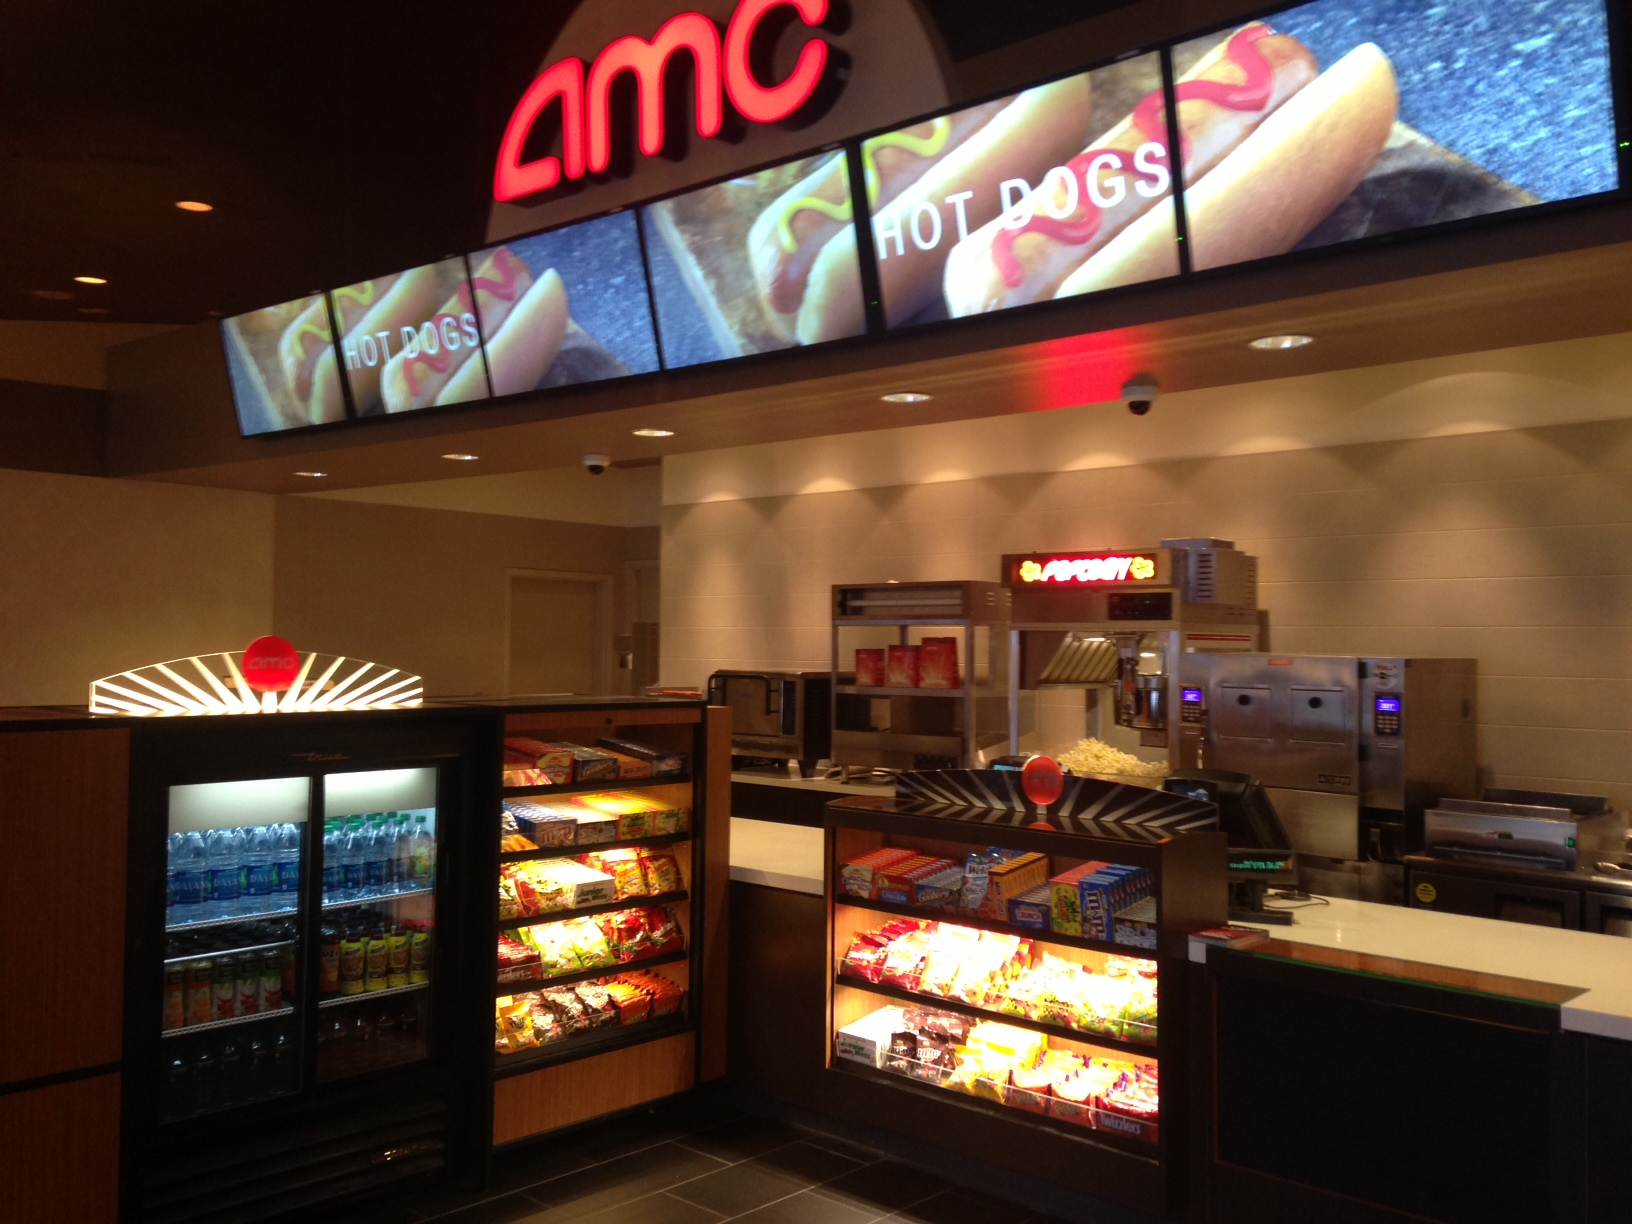 Amc Theatres Will Charge 1920 Price For Movies On Reopening Day Aug 20 Pennlive Com